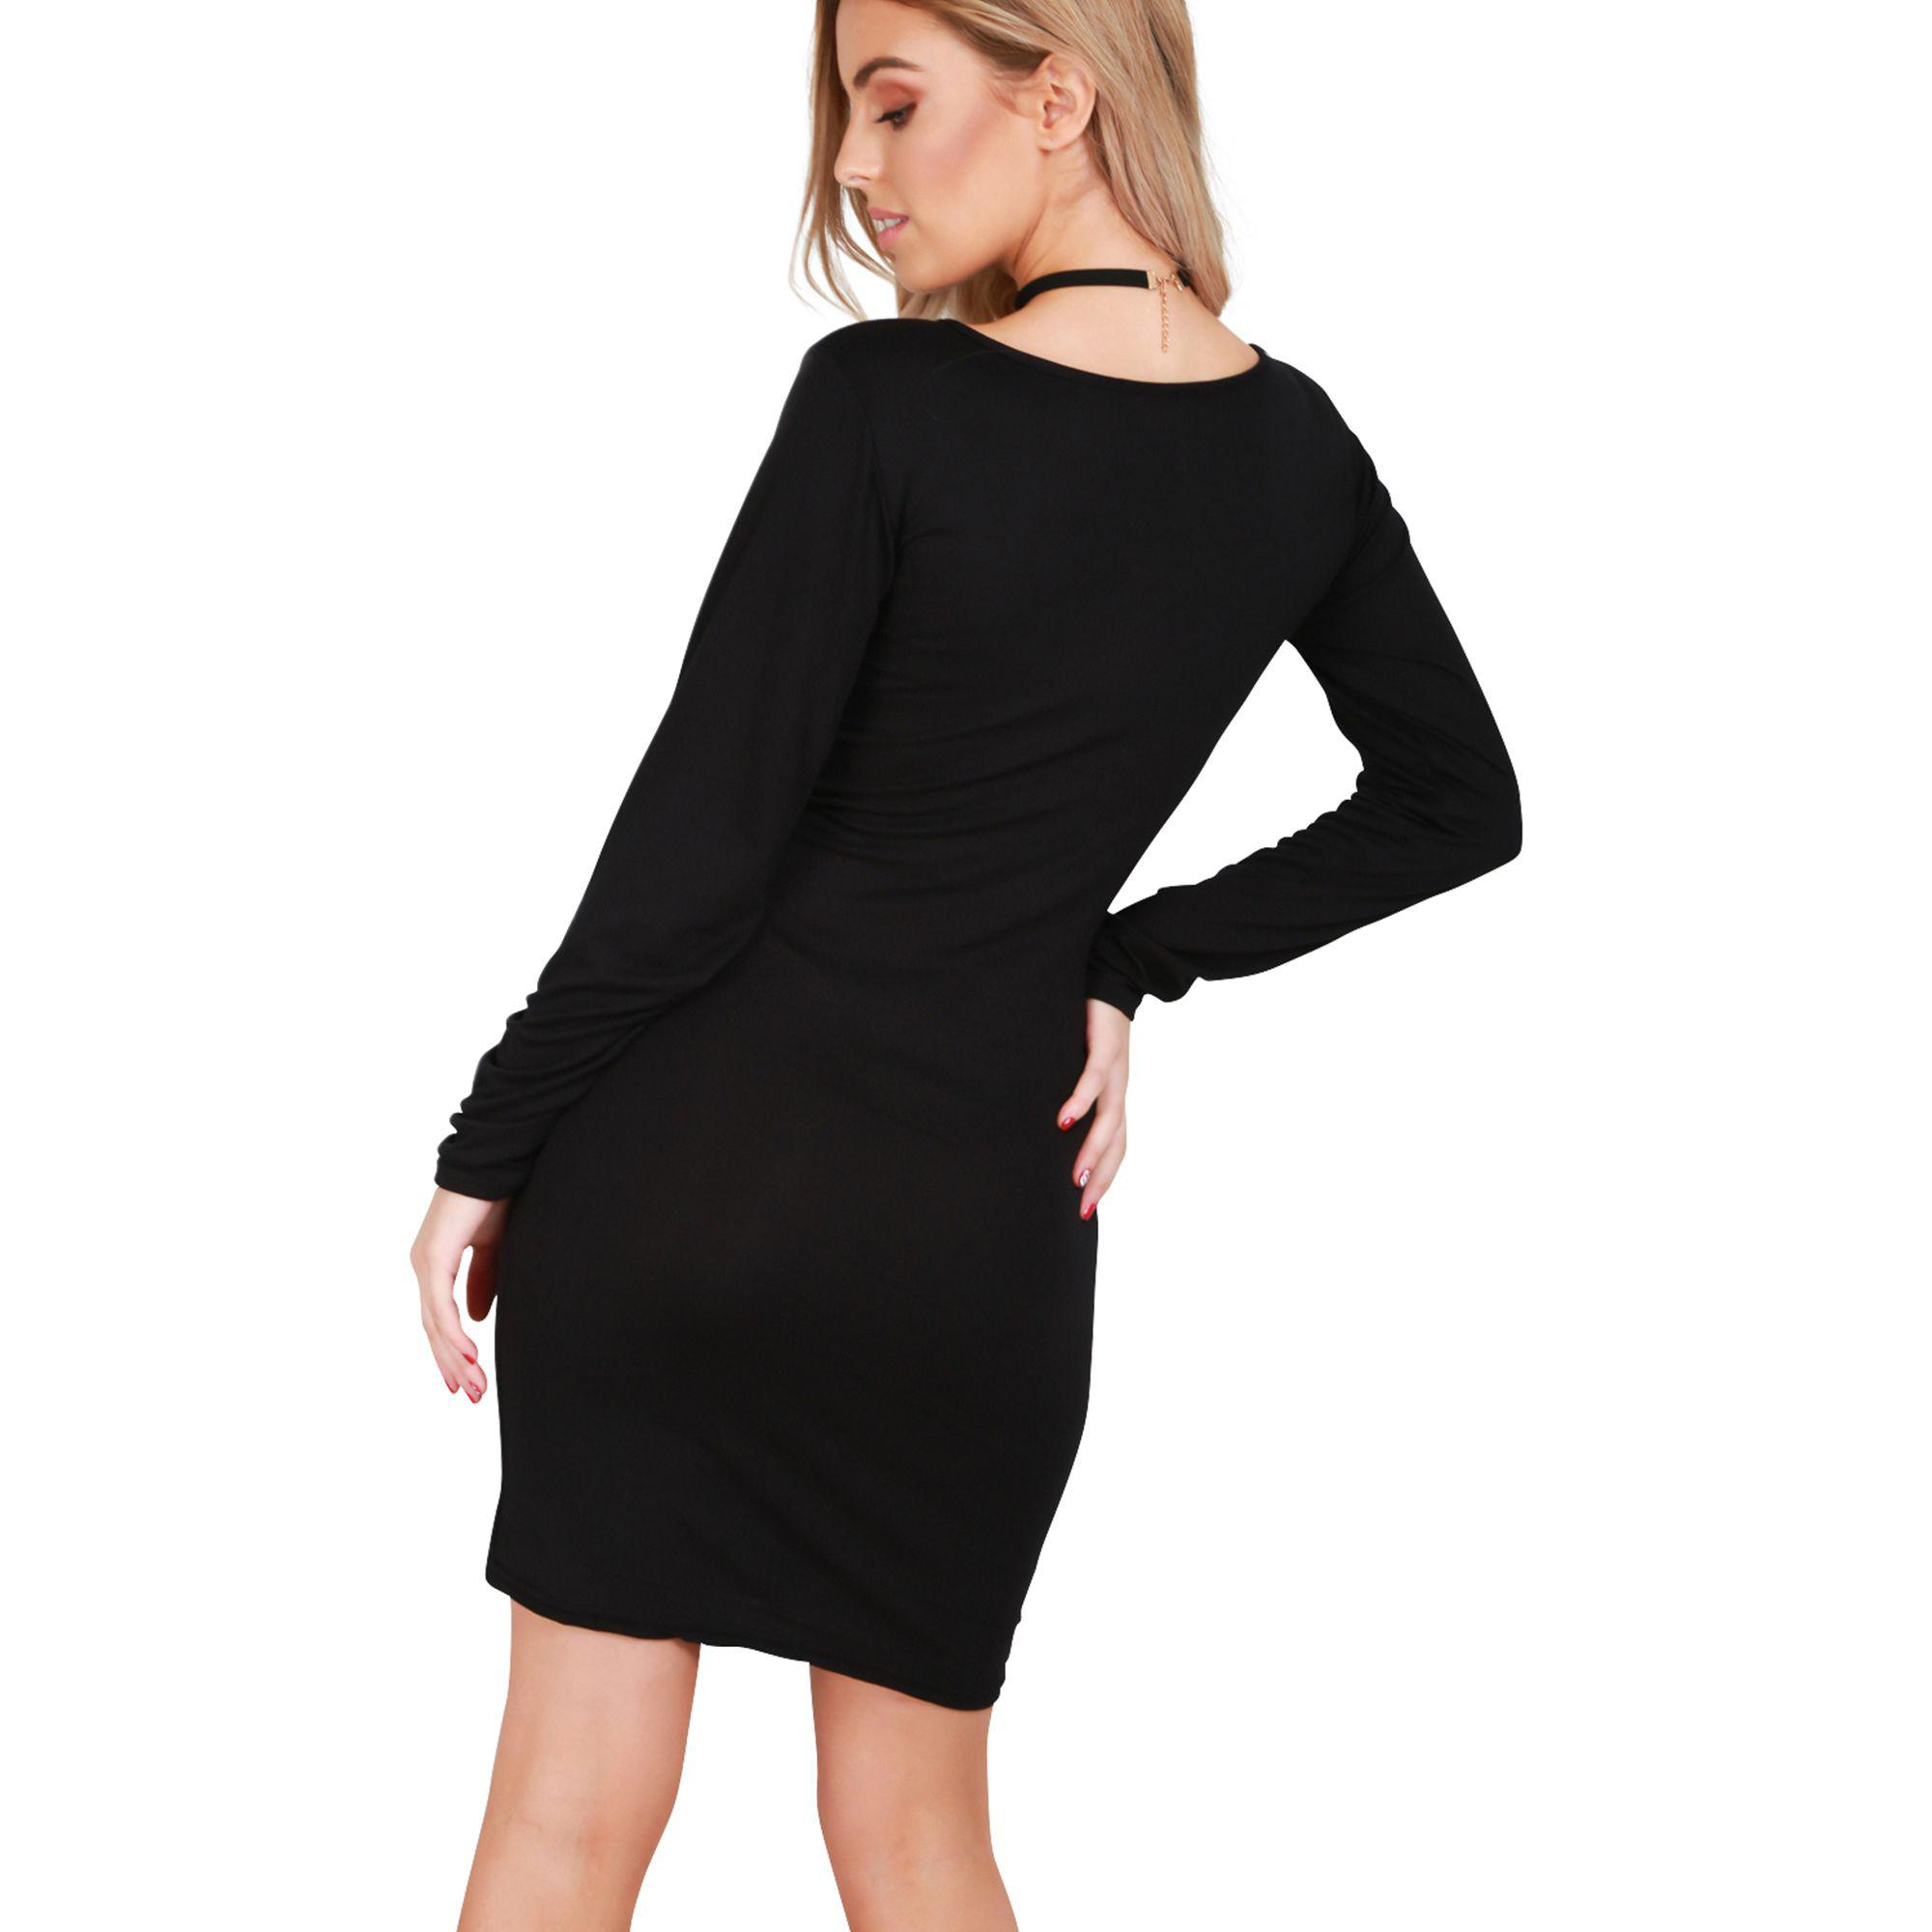 Be Jealous Black Mummy s Christmas Pudding Bodycon Dress in Black - Lyst b3aa9609a